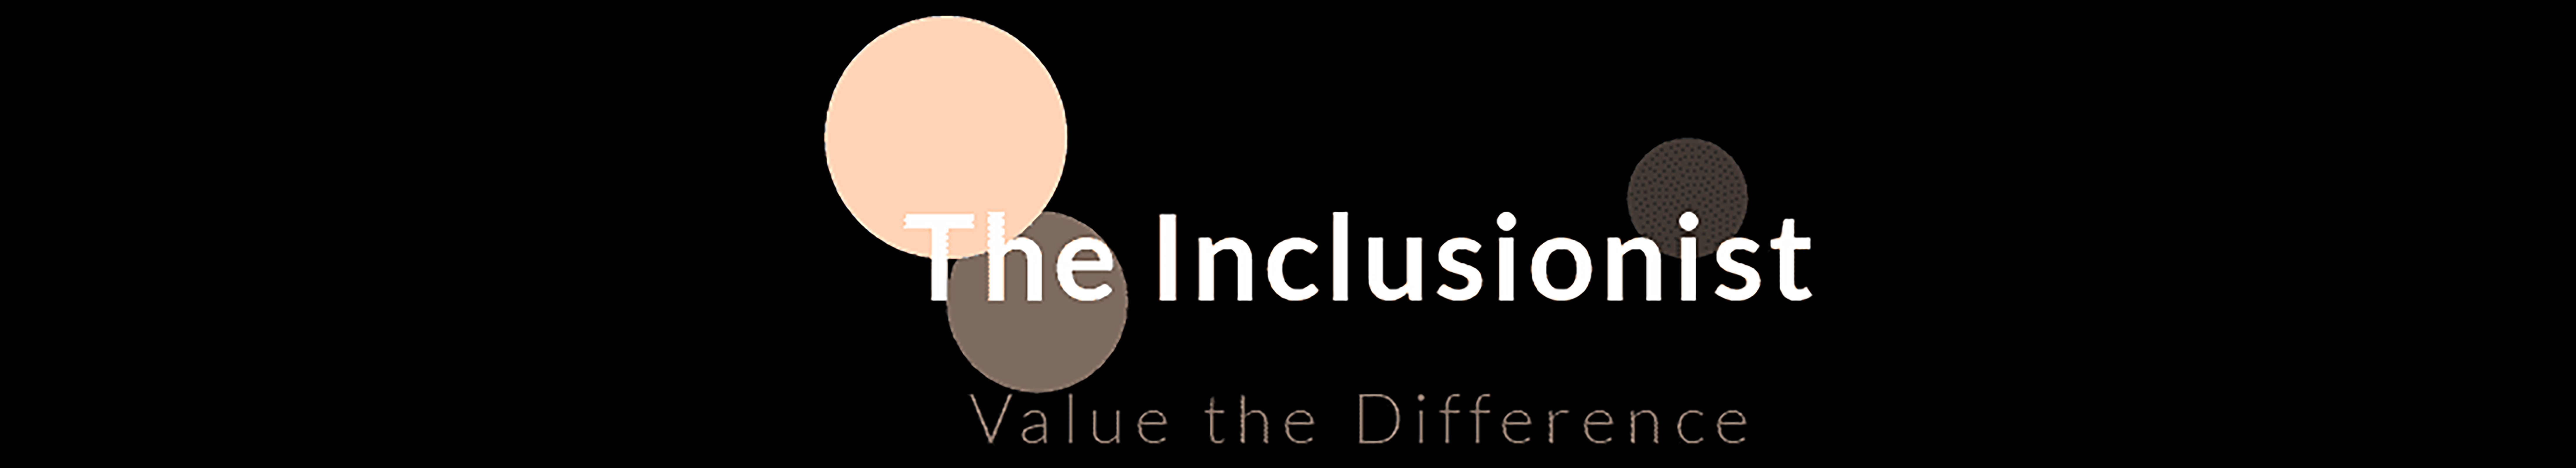 The Inclusionist